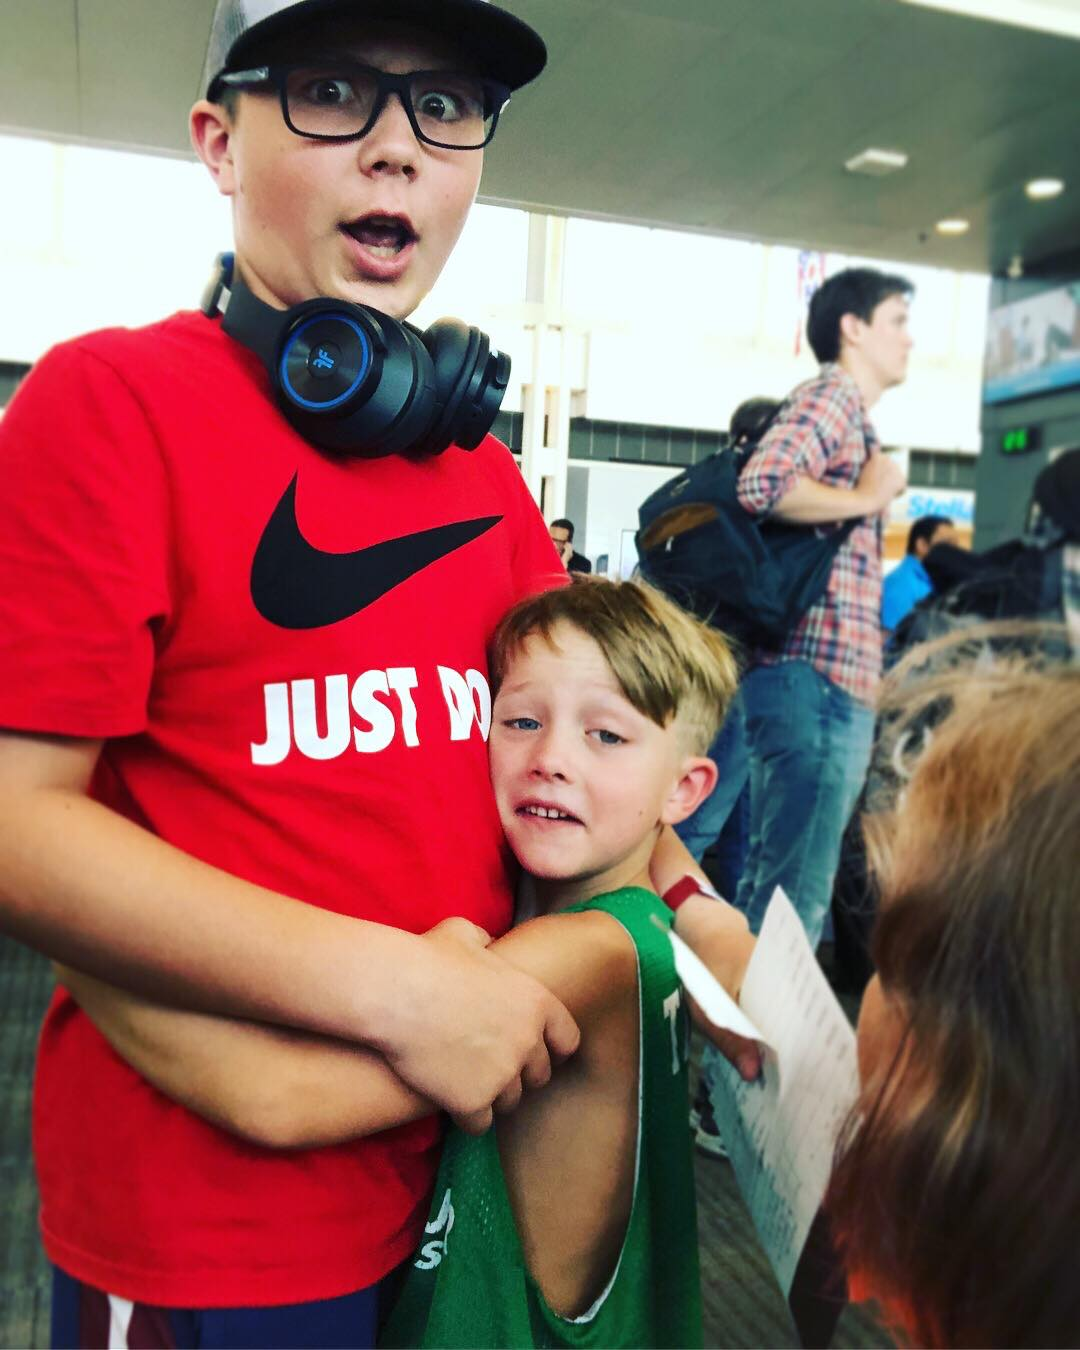 Saying goodbye before Hudson boards his flight! (check out his wrist band!)